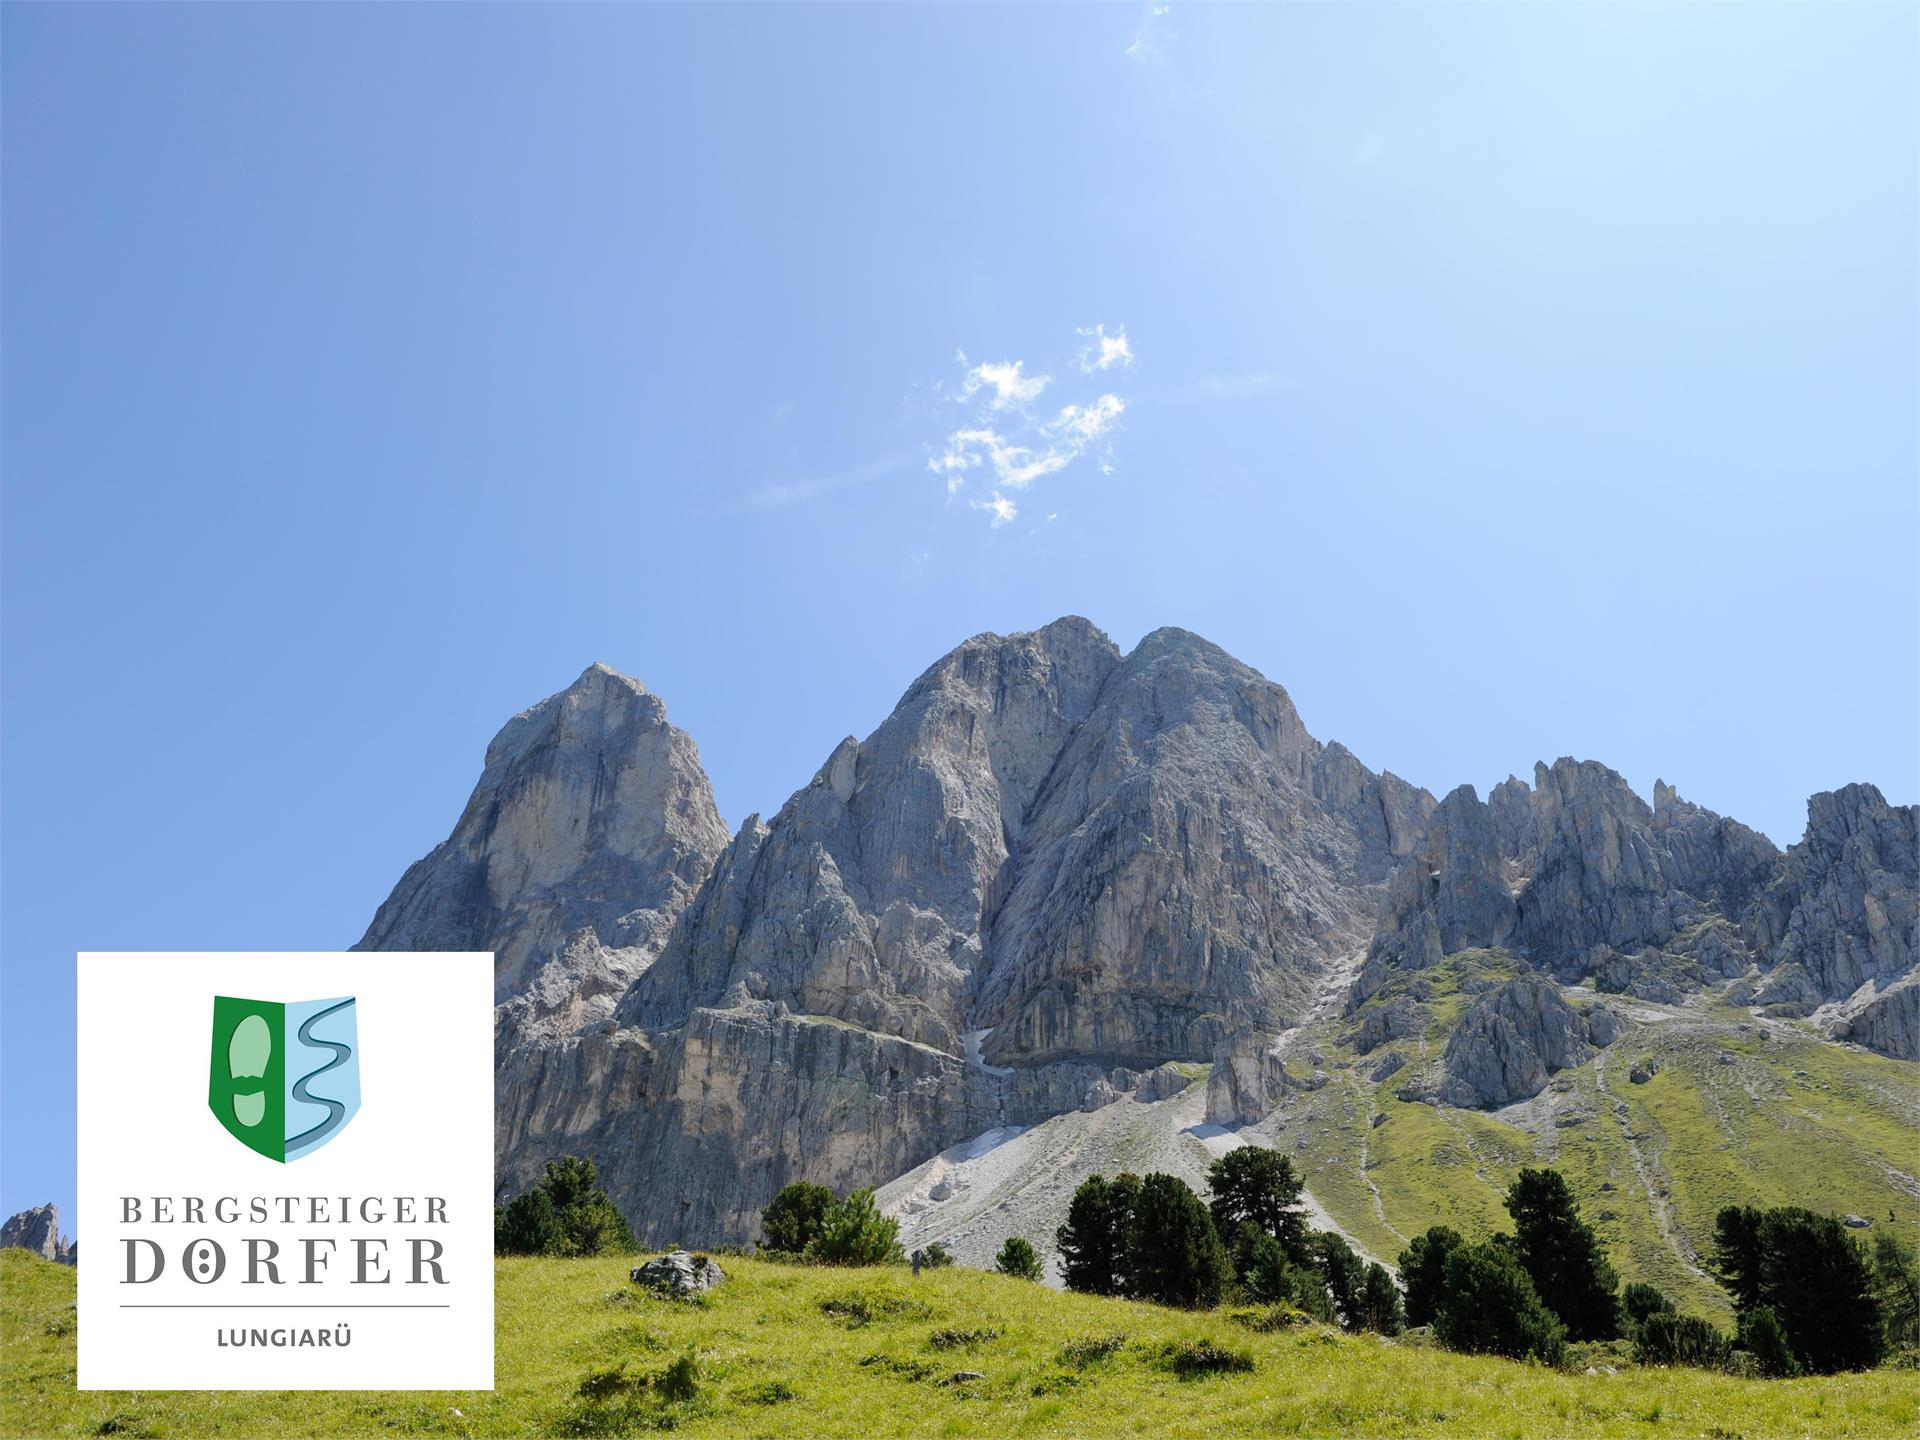 Mountaineer week: Discover nature by walking